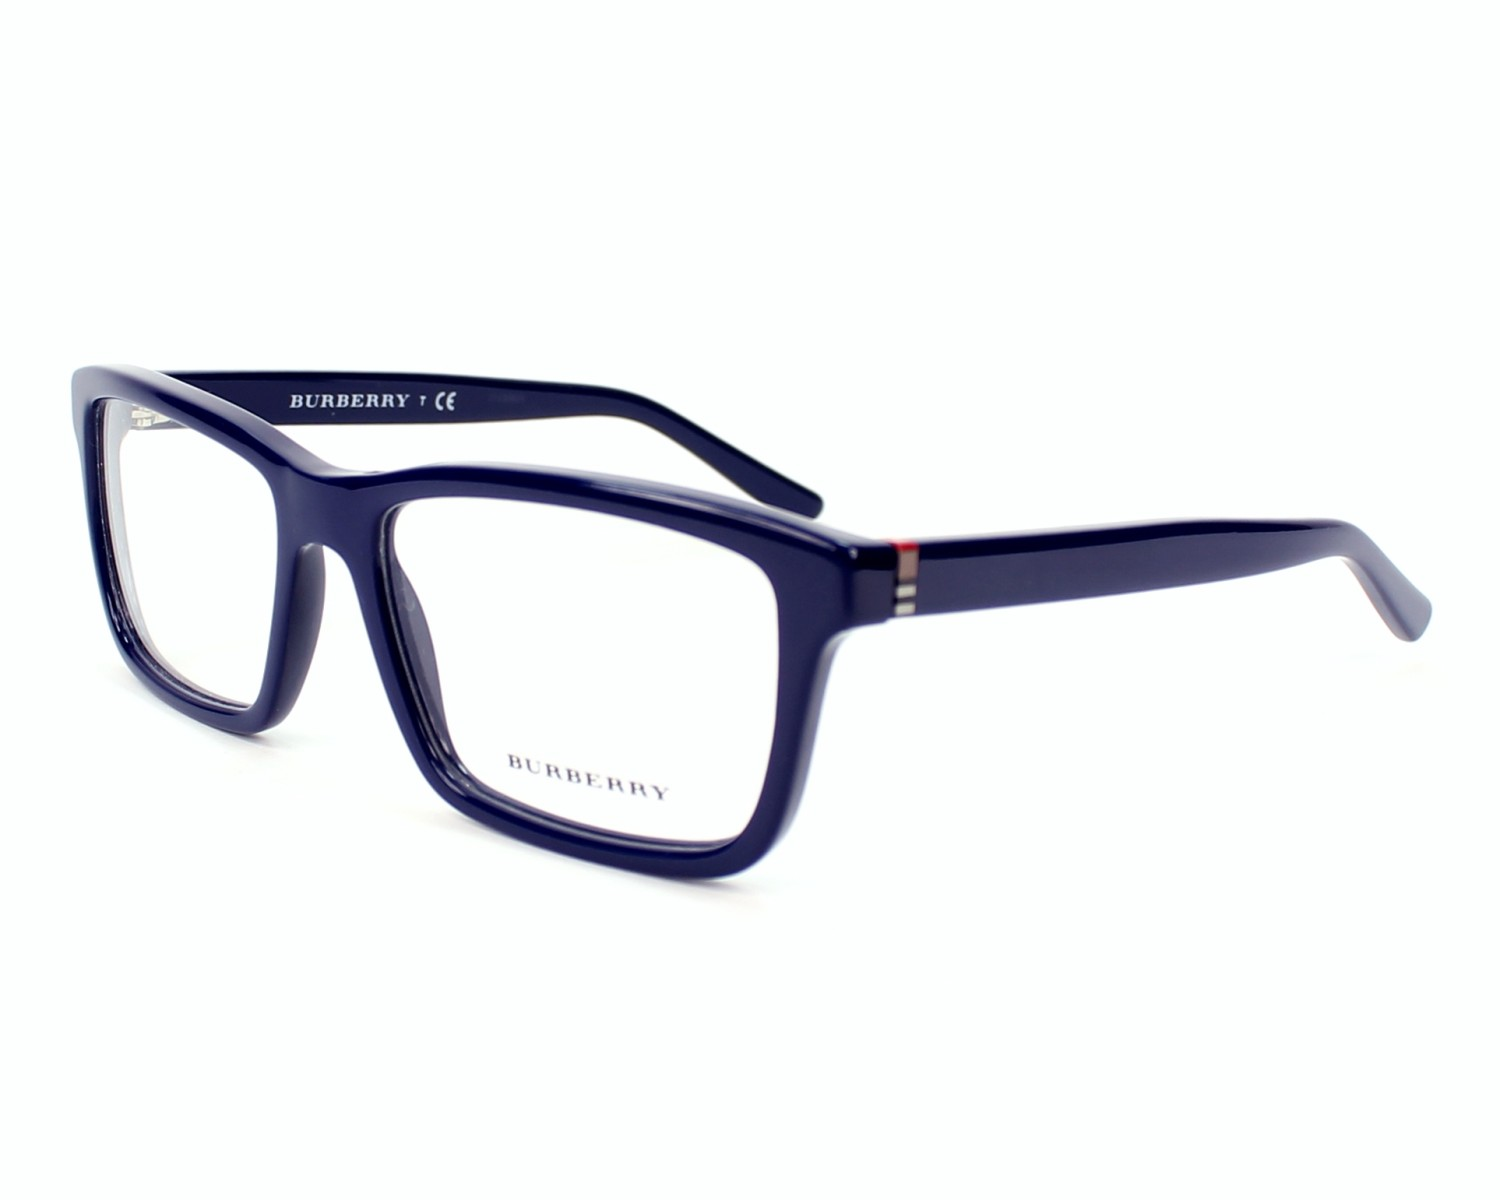 Burberry Red Eyeglass Frames : Order your Burberry eyeglasses BE2188 3514 55 today